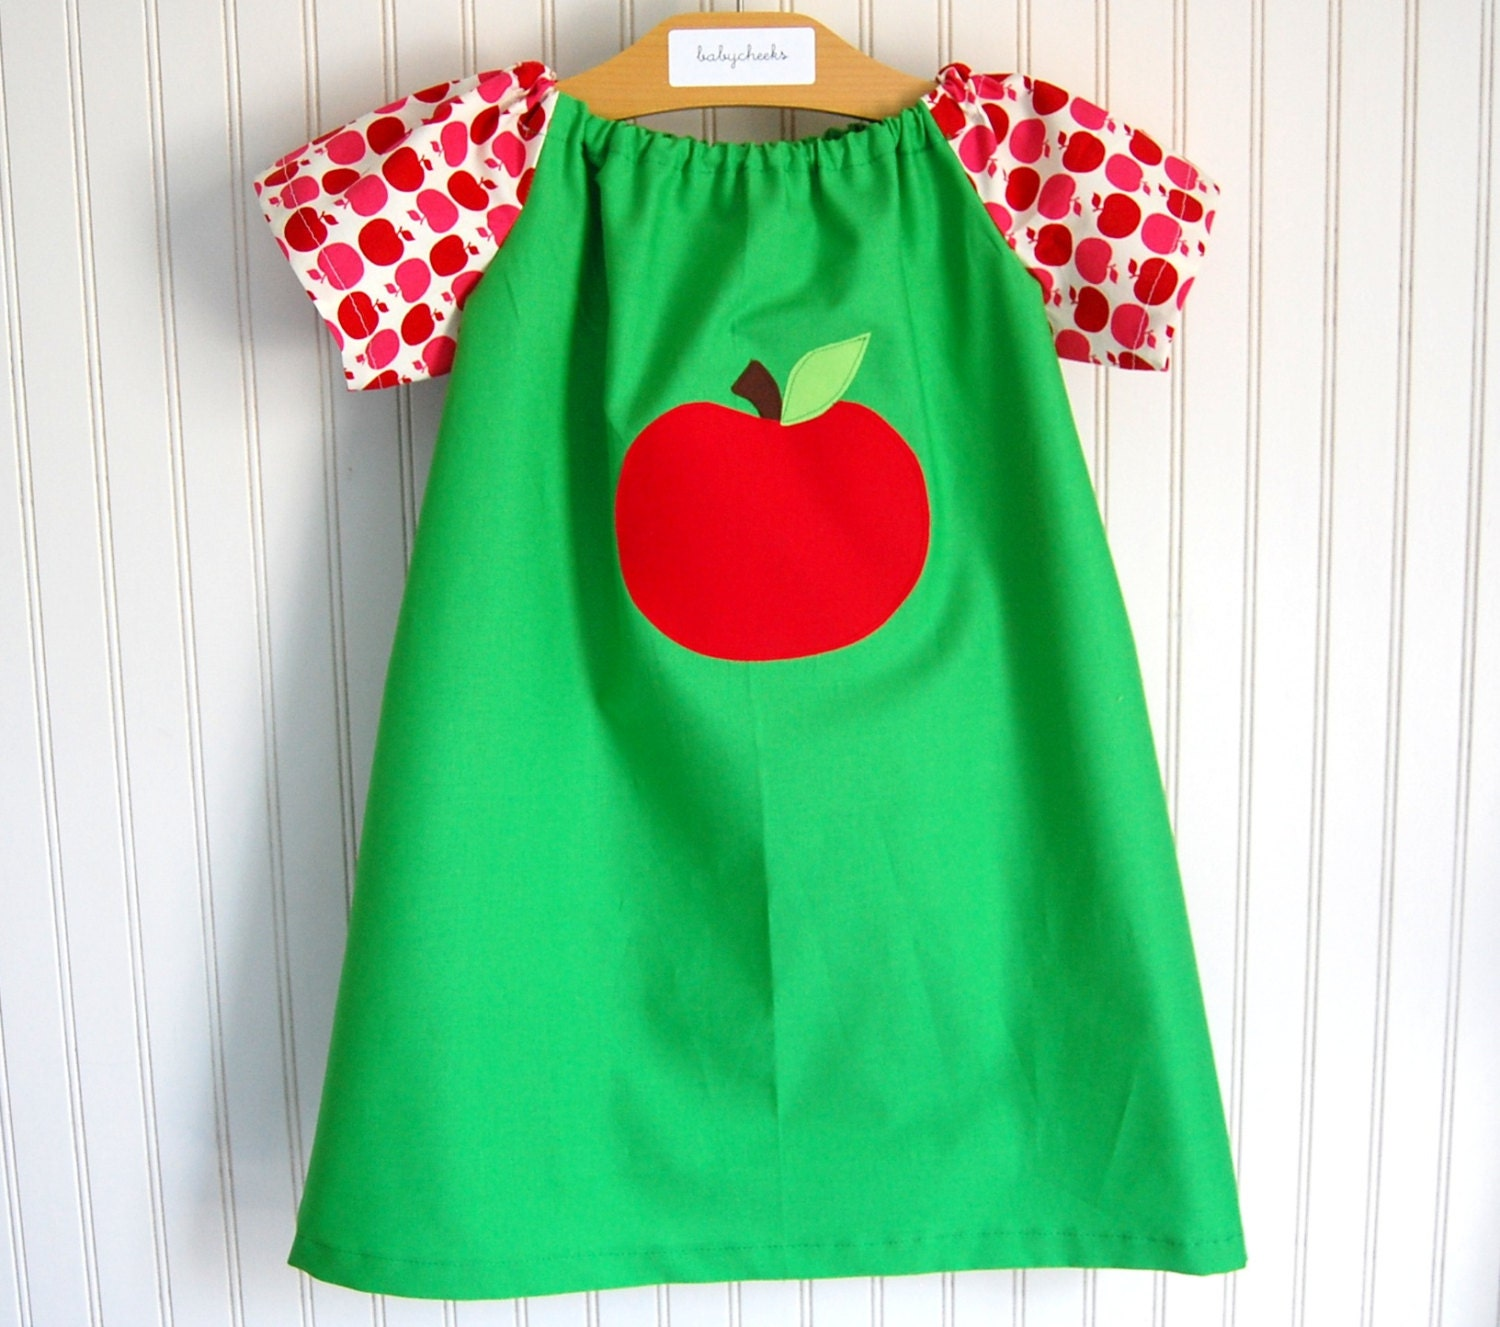 Apple Dress - Short Sleeve Peasant Style Sizes 12-18 MOS, 2/3T, 4/5T, 6/7 by The Trendy Tot - thetrendytot